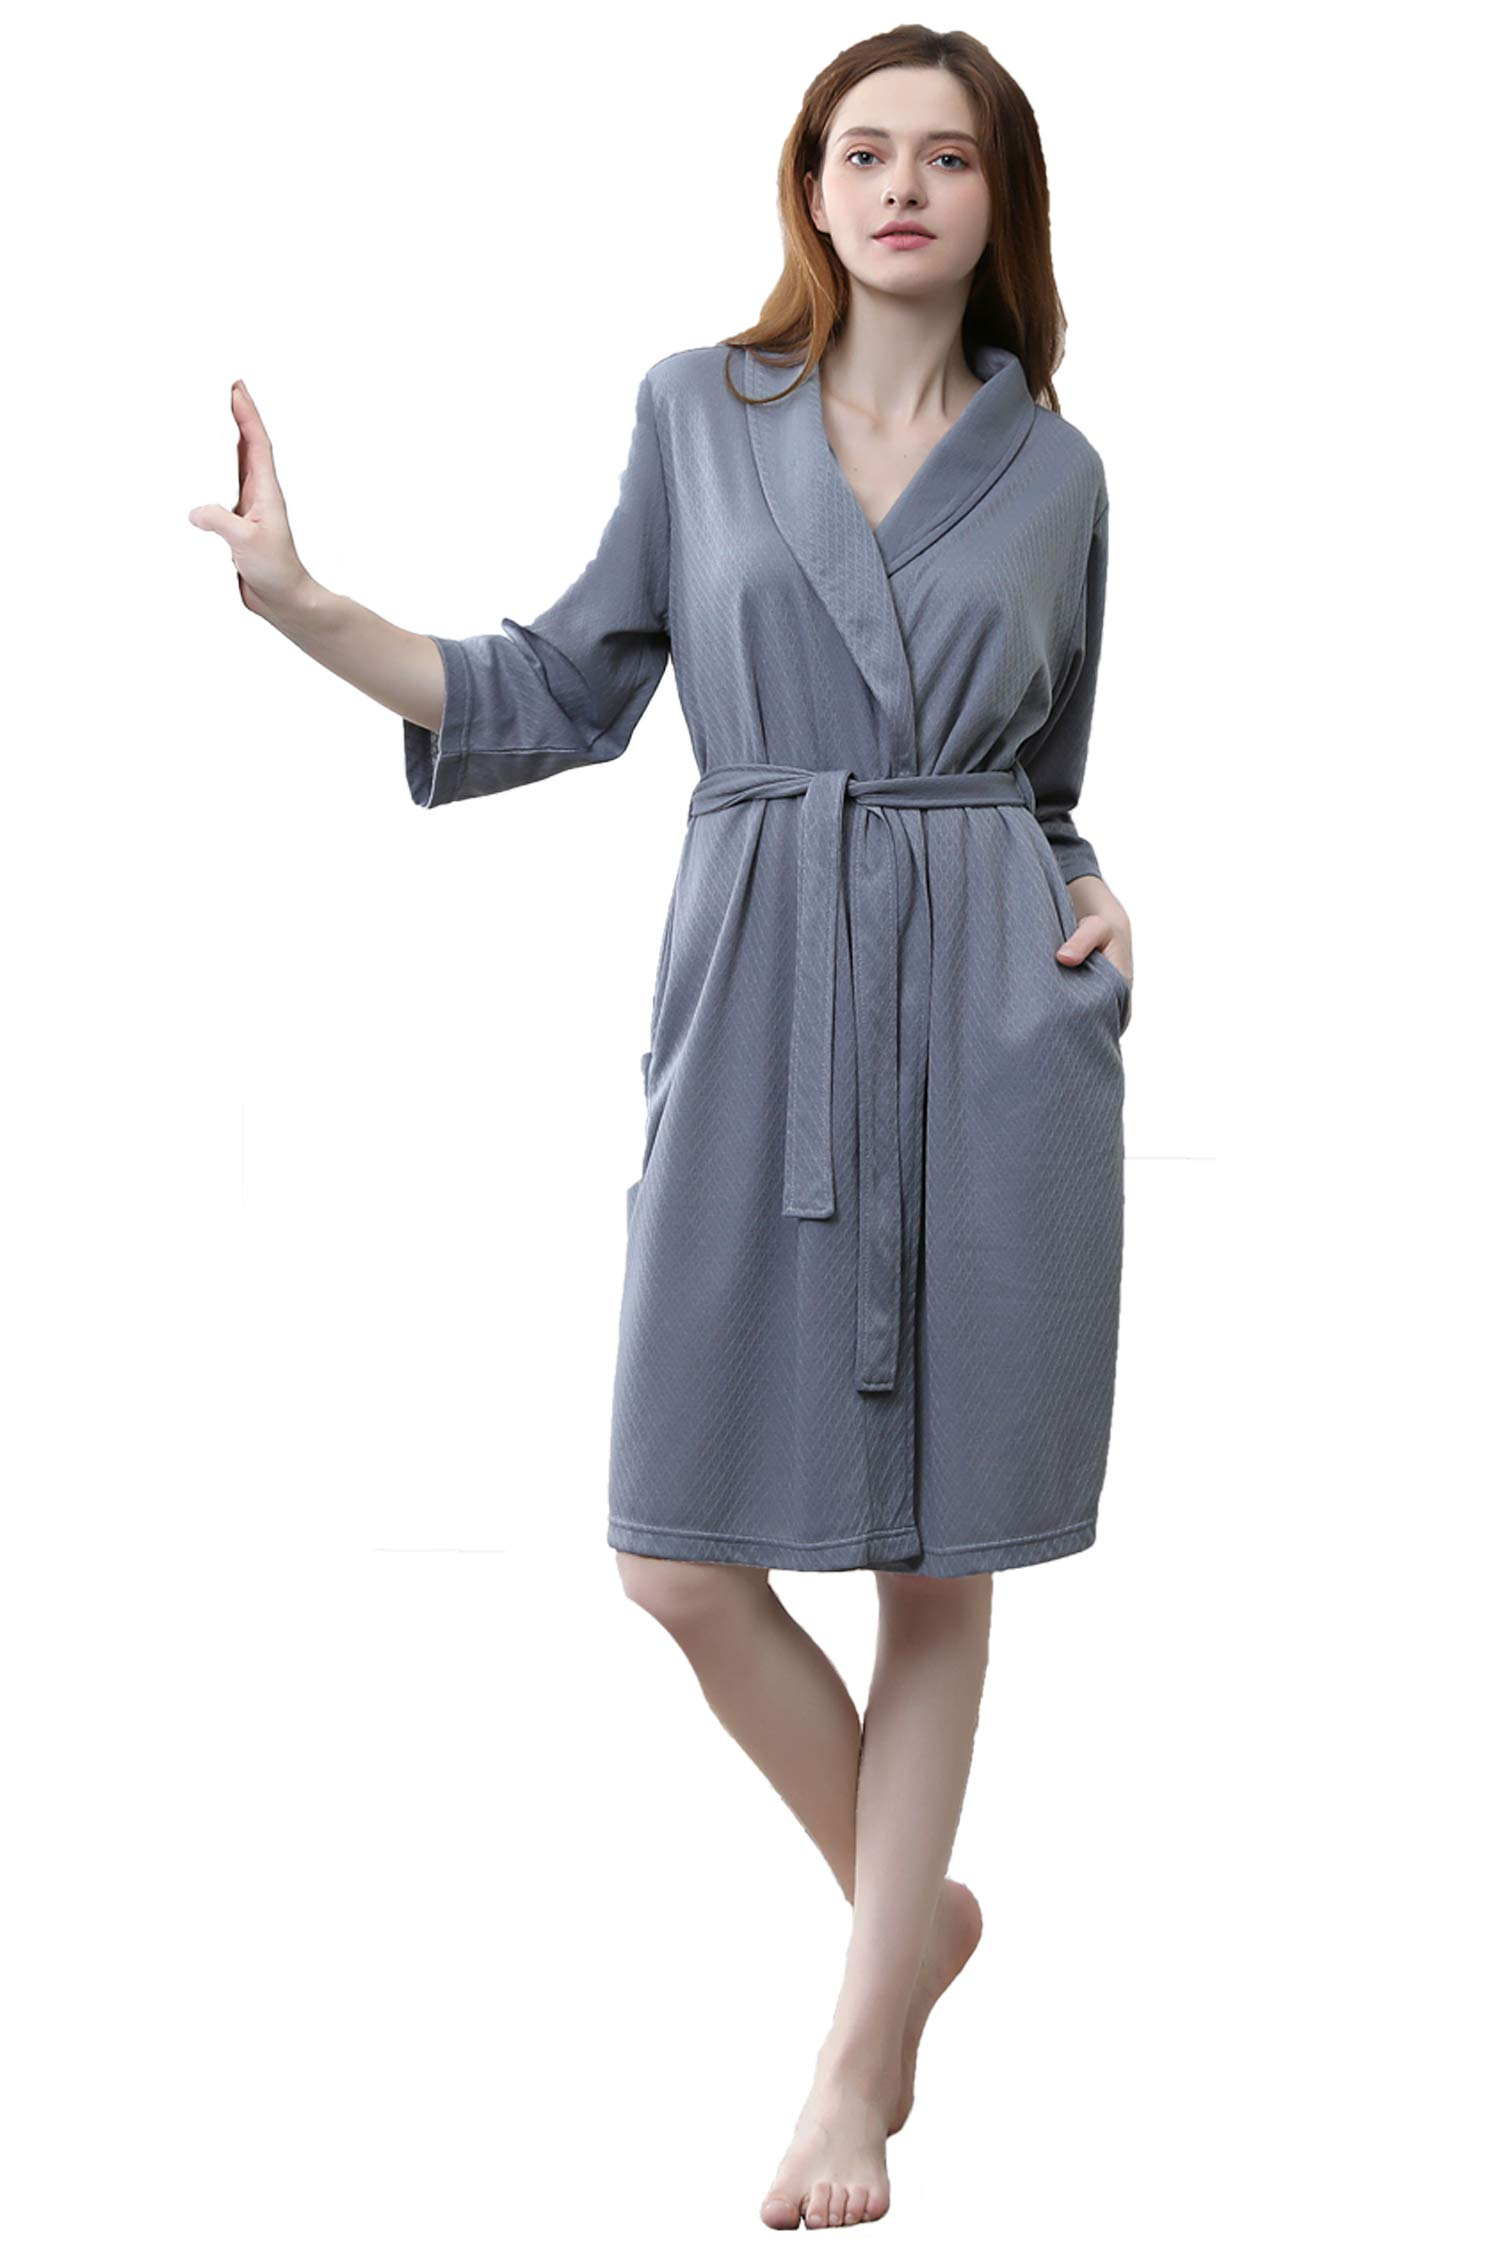 Cahayi Waffle Women Bathrobe Lightweight Men Robe Short Kimono Sleepwear Summer